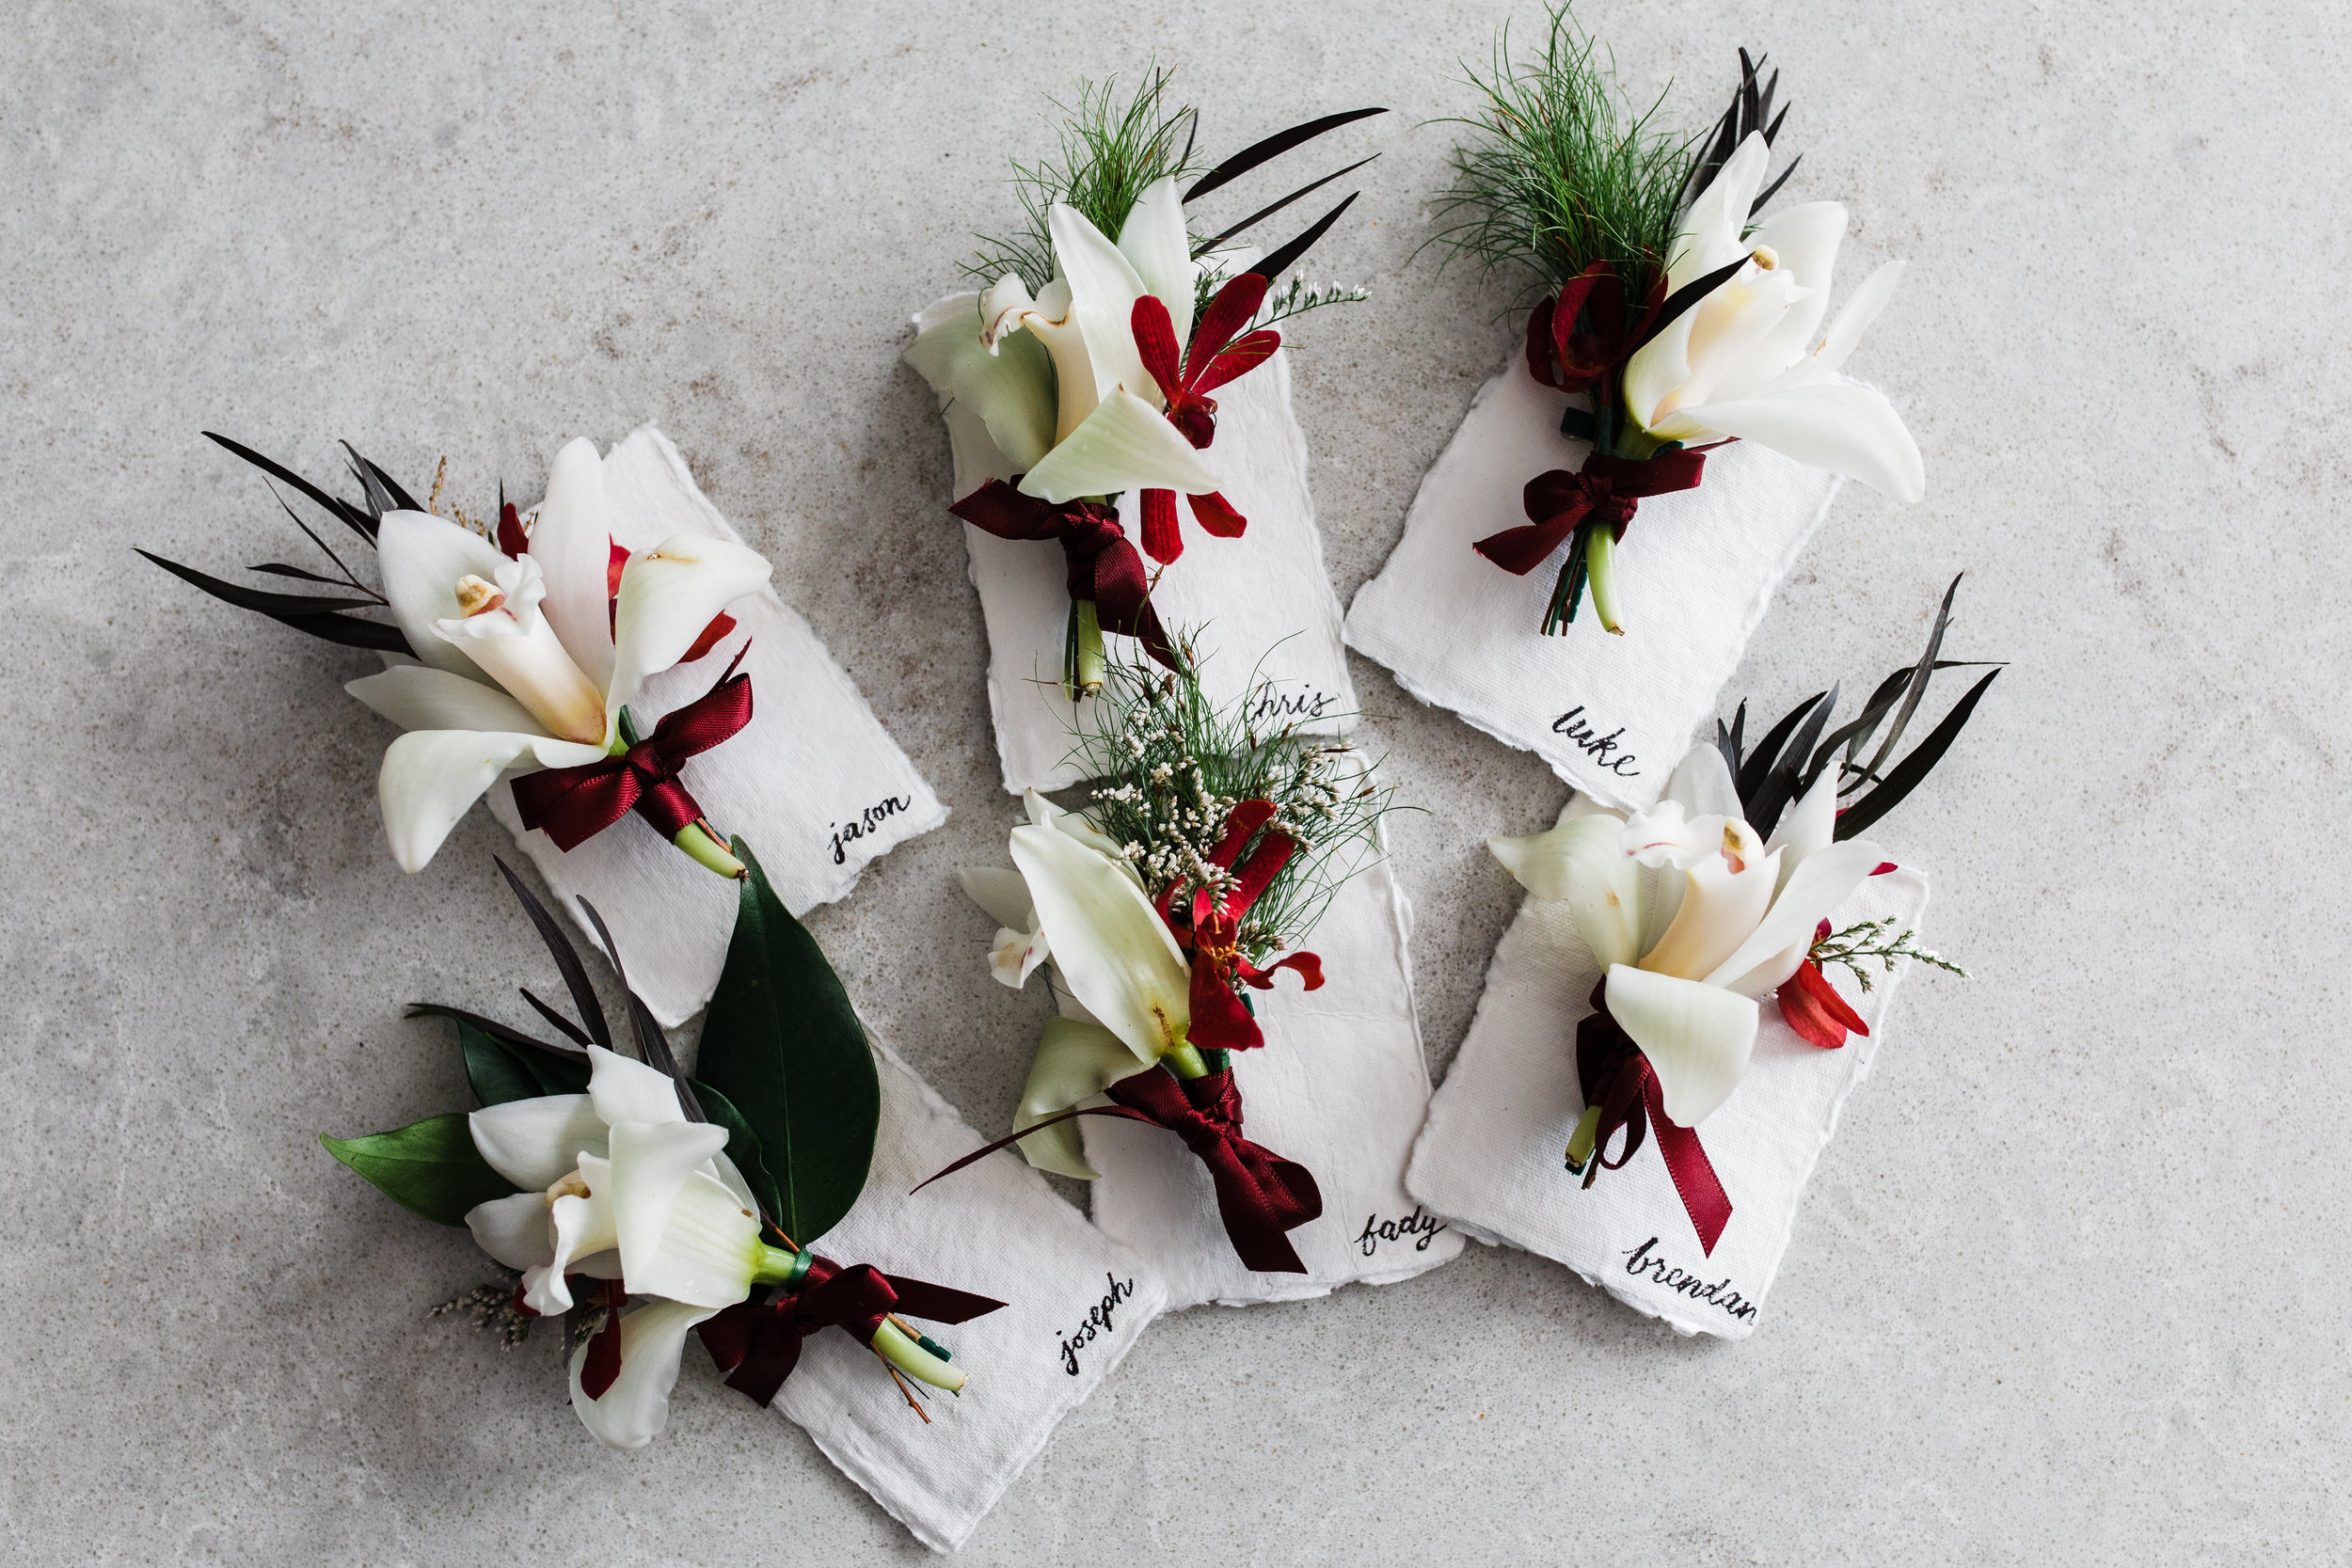 Groomsmen buttonholes - Best men and/or any groomsmen usually have a similarly matching buttonhole pinned on their chest too. Like the bridesmaids, it is normally slightly smaller and simpler.